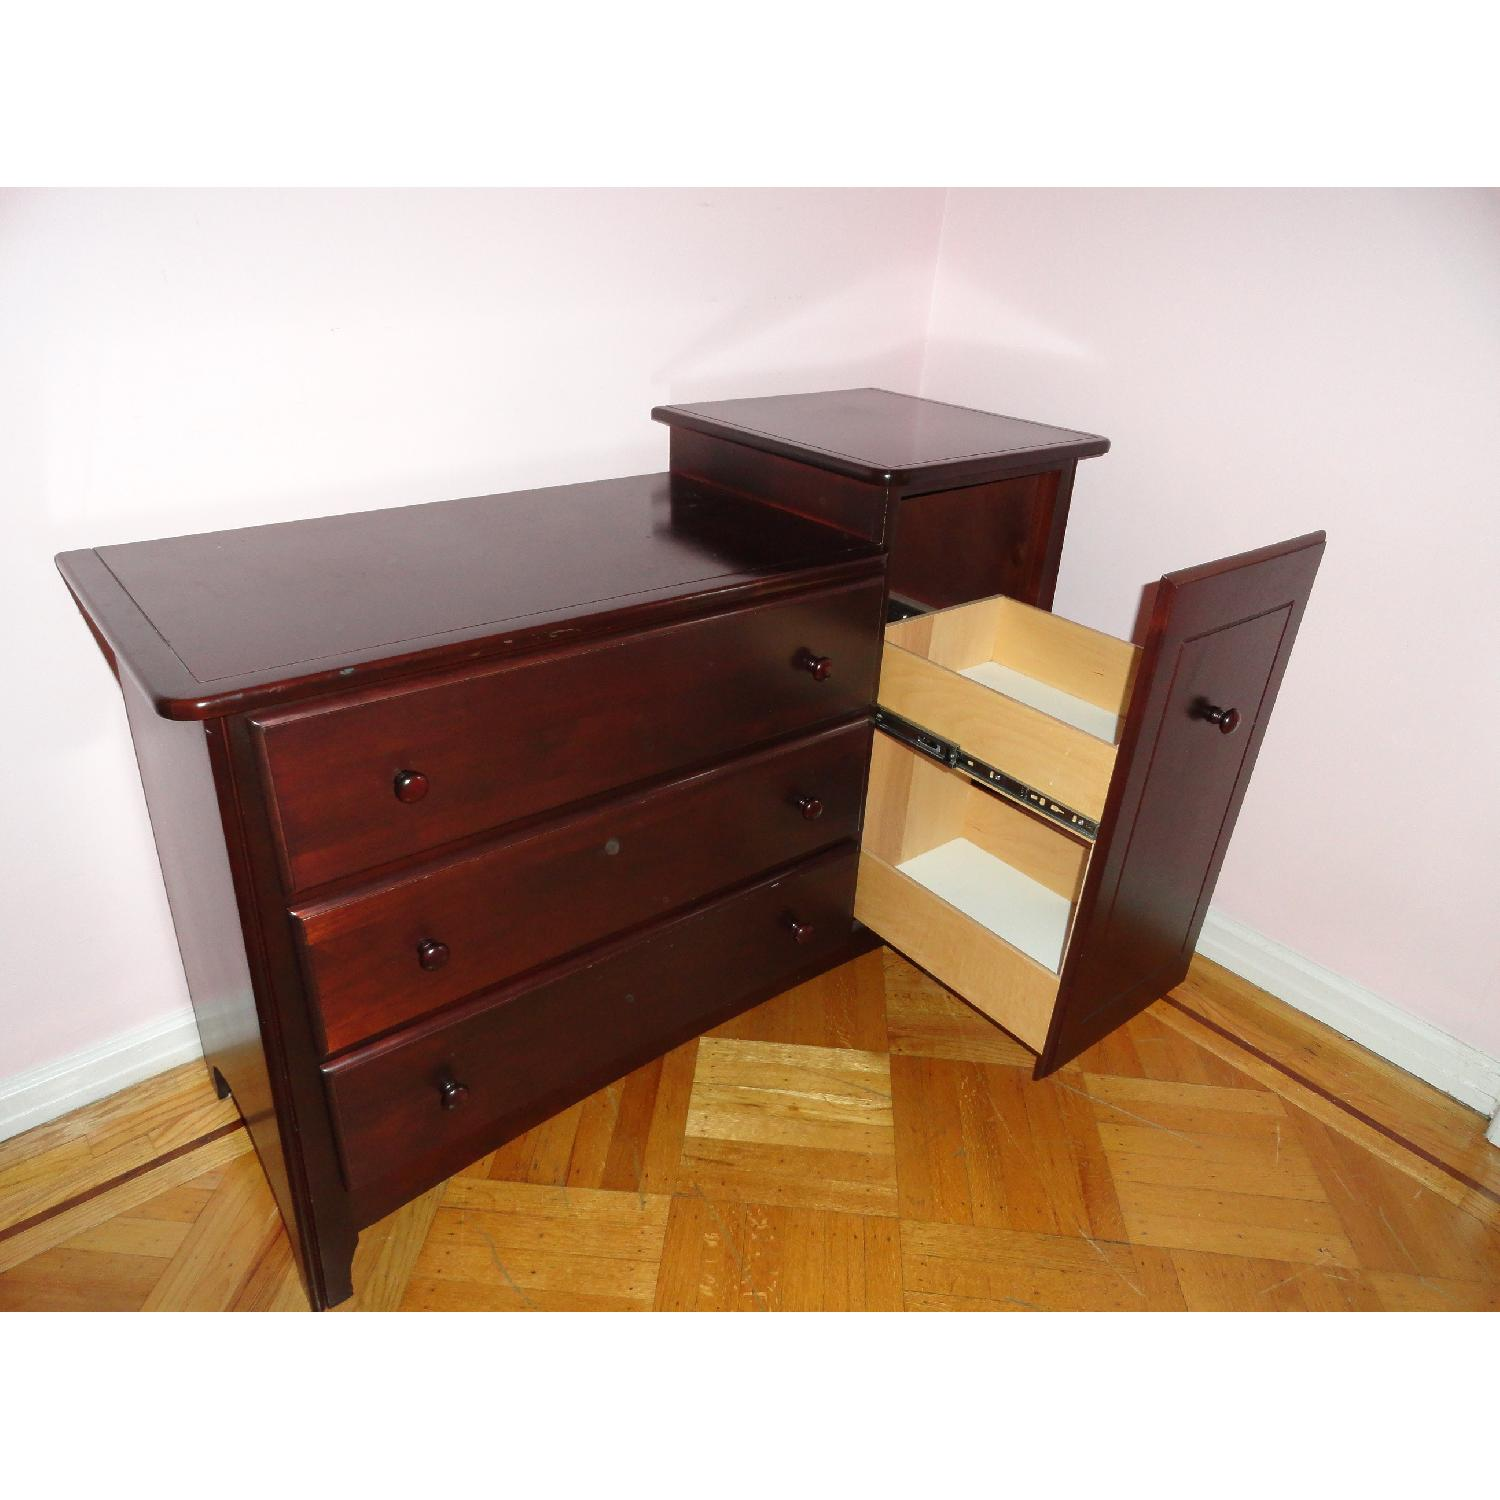 Ragazzi 4 Drawer Mahogany Changing Table - image-7